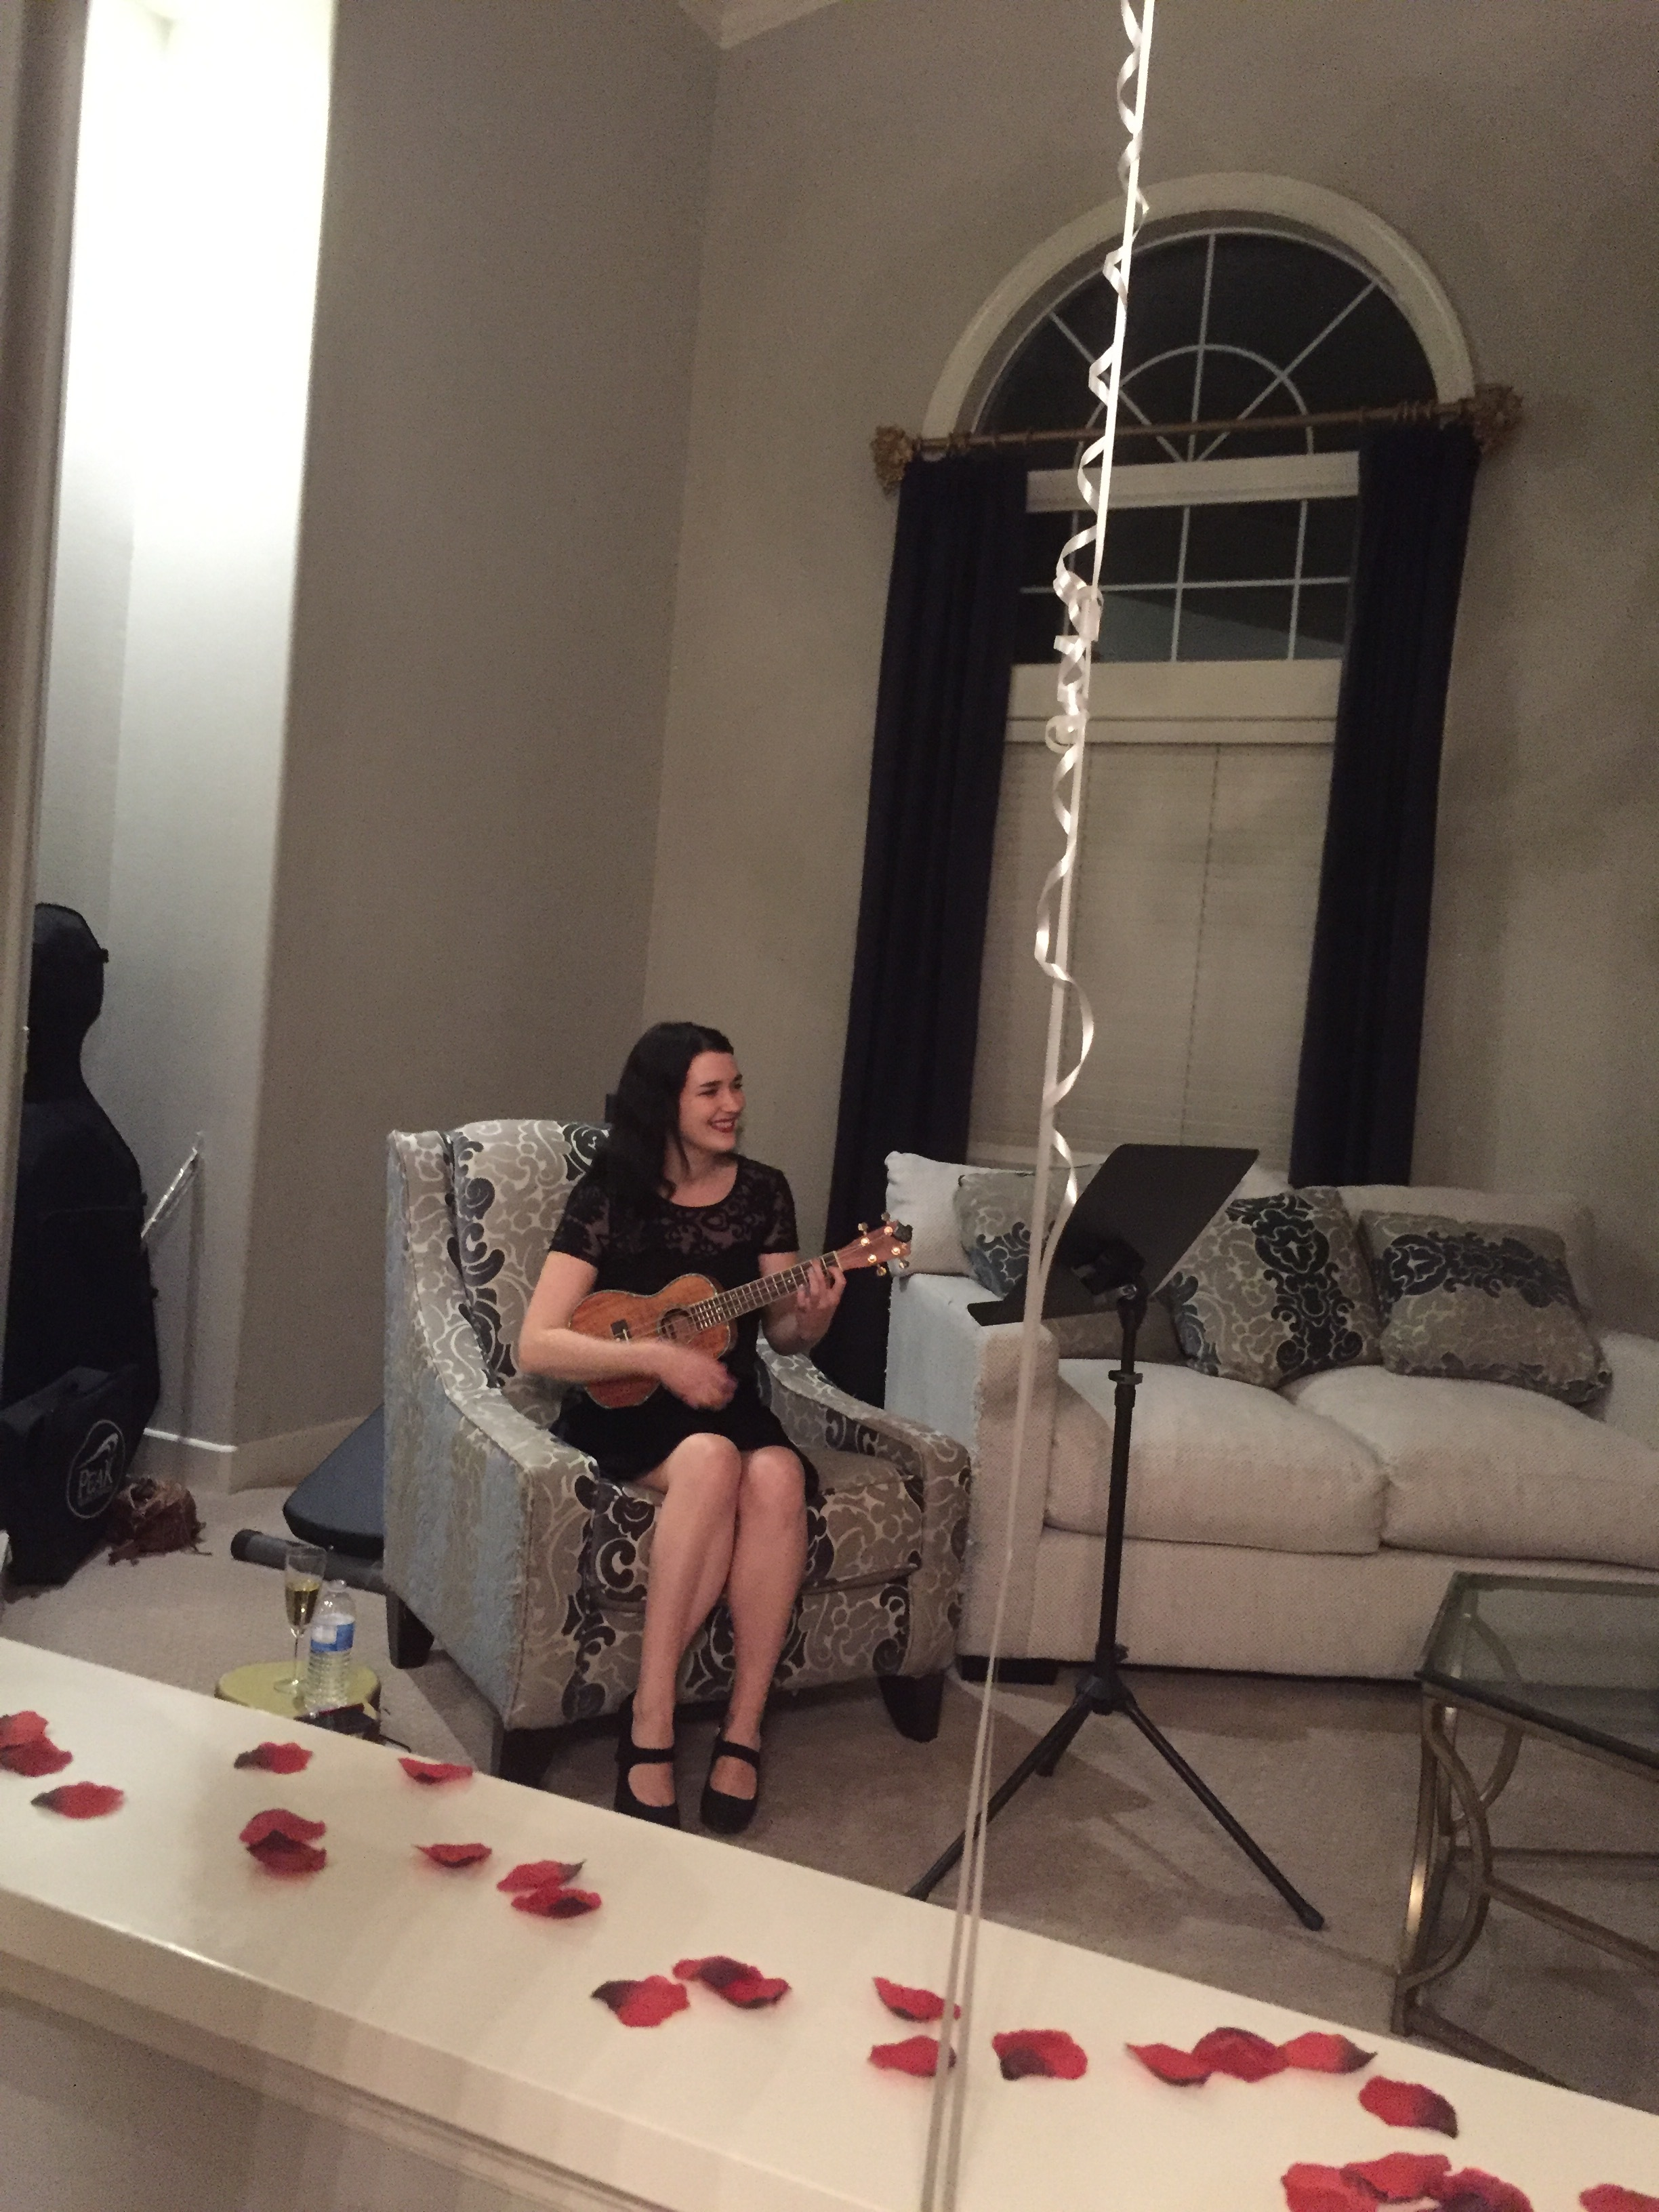 i had the honor of singing/ playing for a private proposal dinner. with balloons and rose petals everywhere, a private chef, and live music, how could she say no?!?